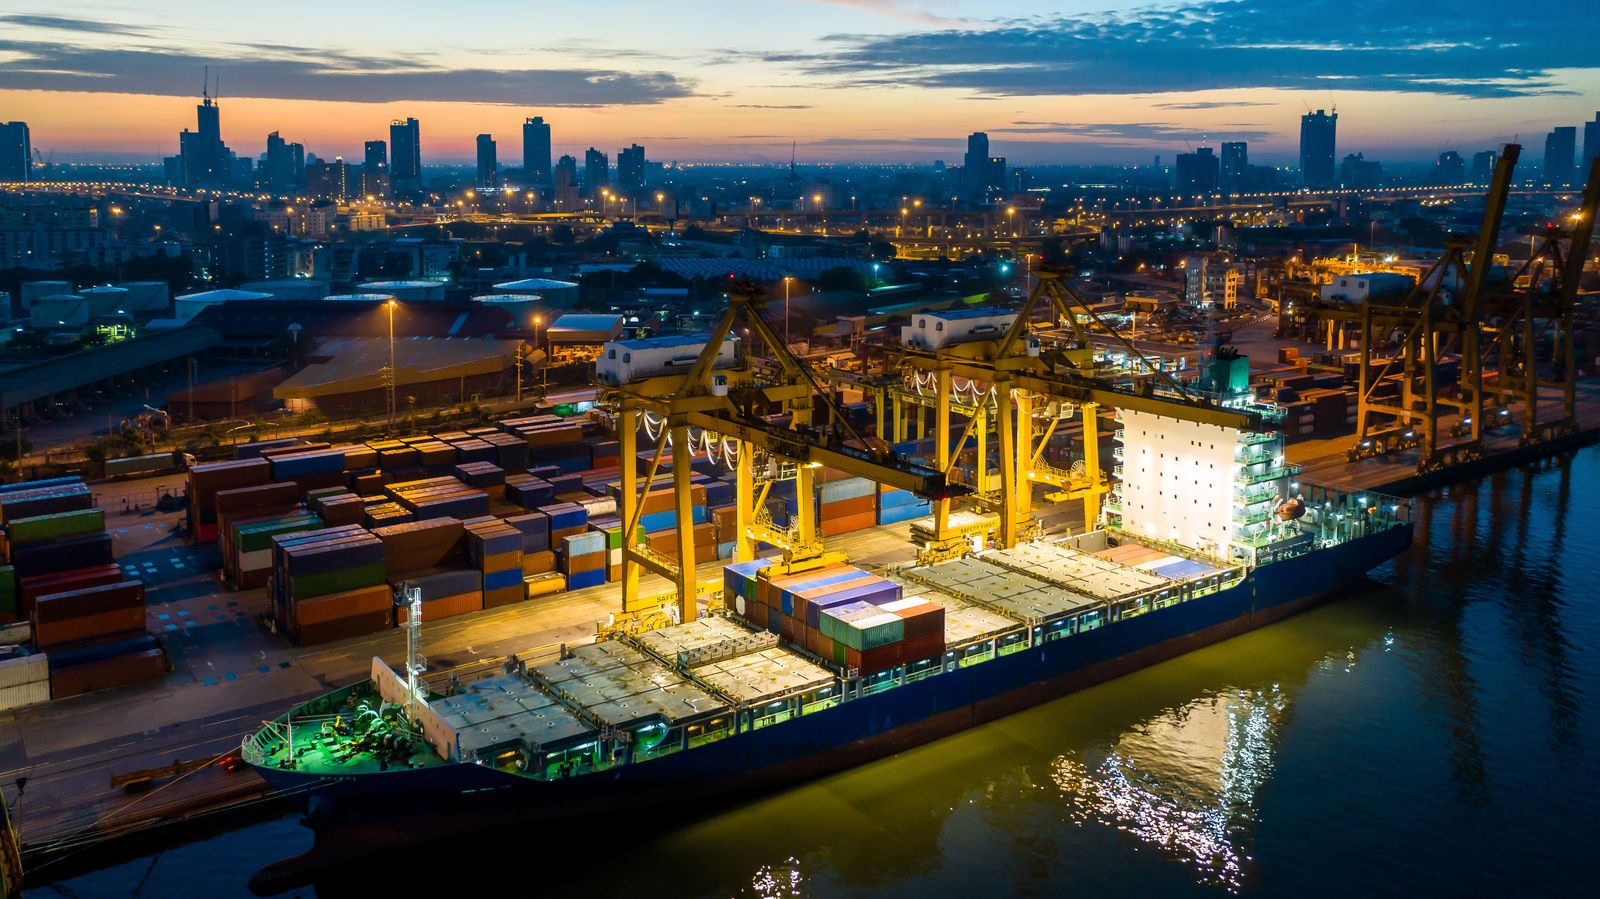 Container ship & warehouse